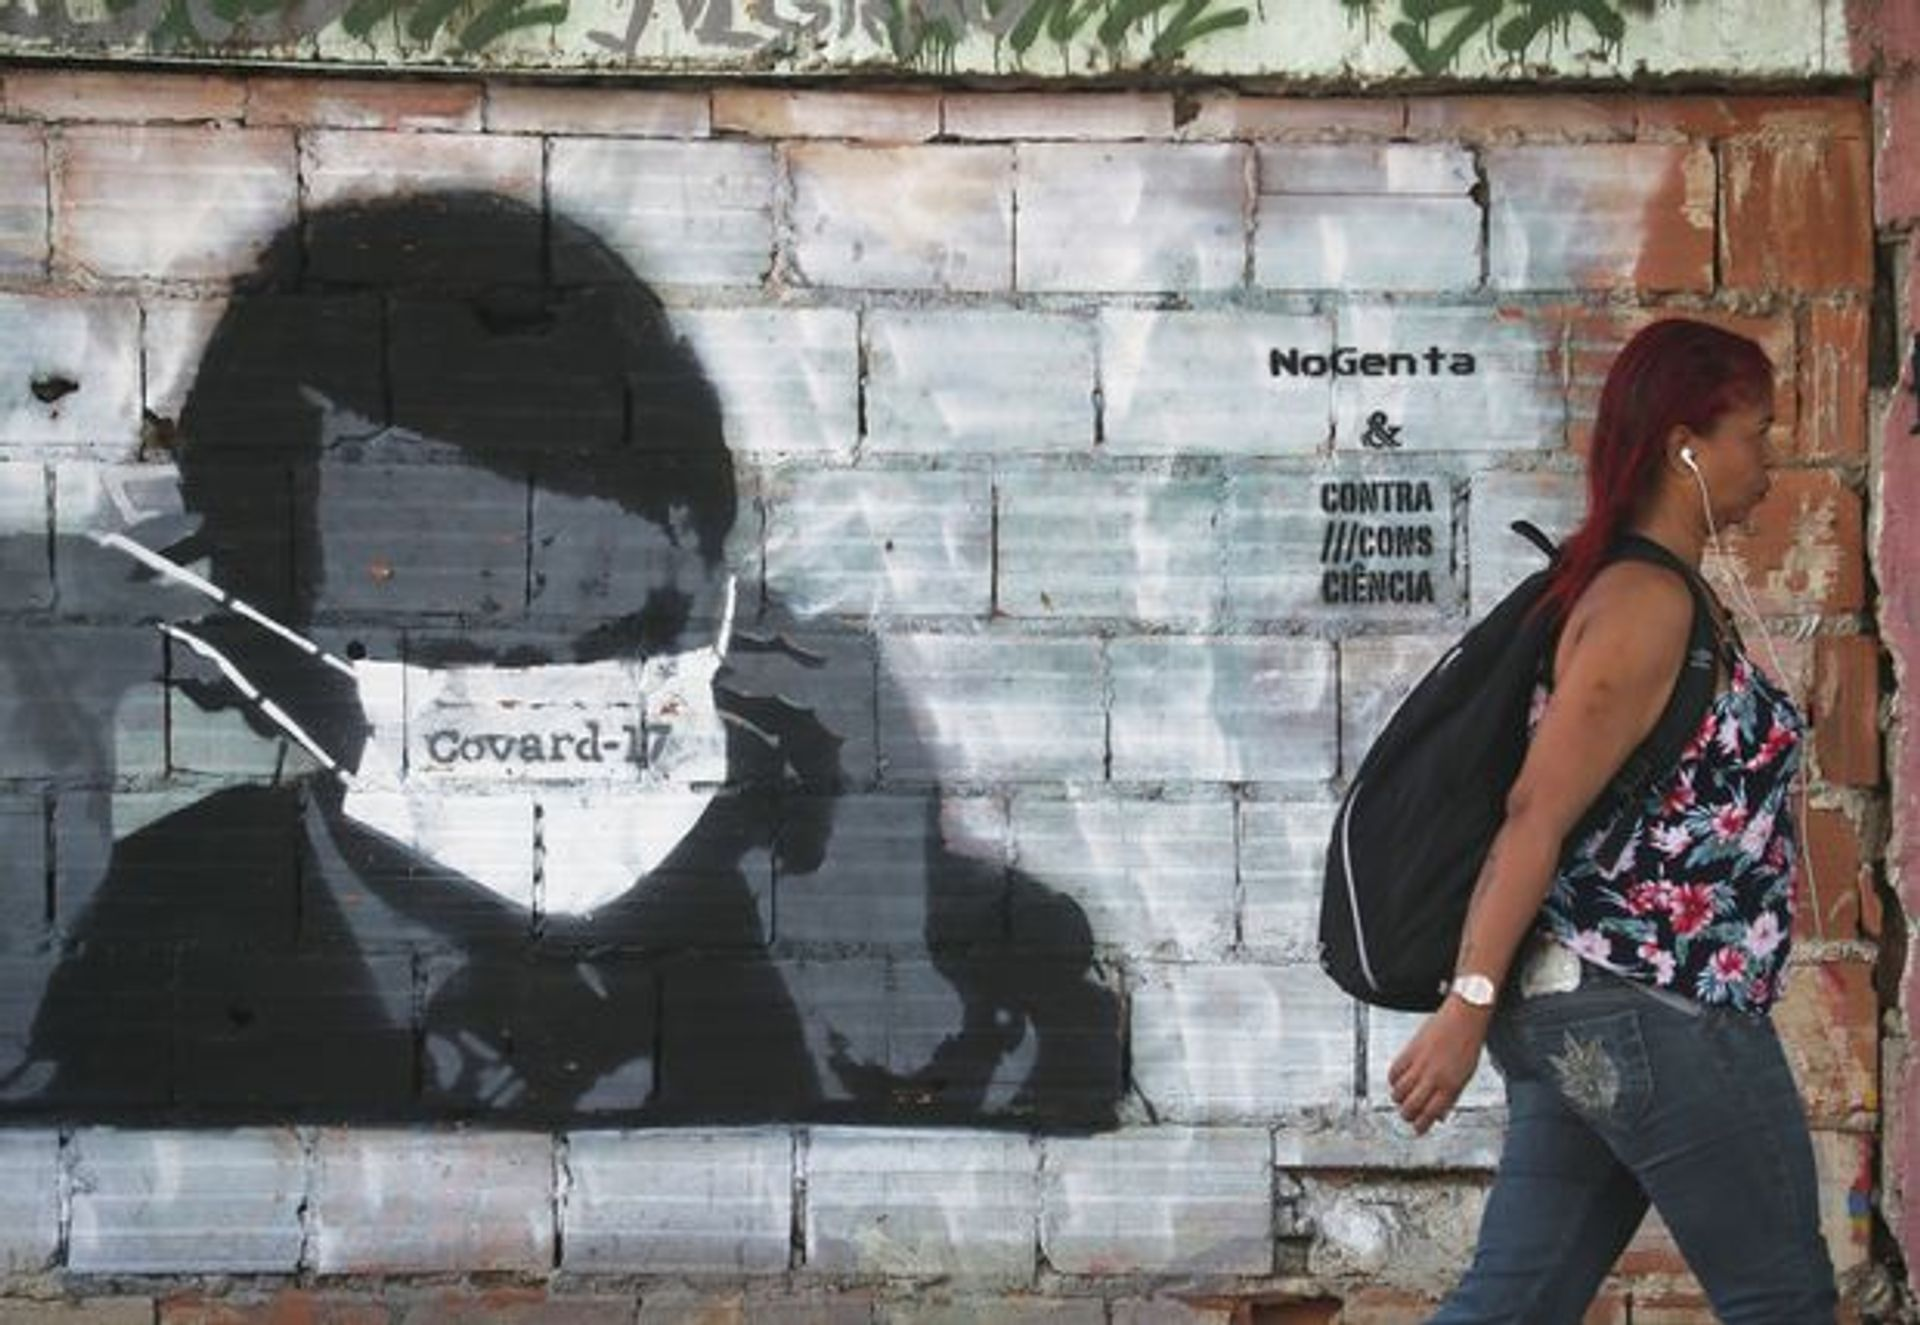 A woman walks past street art in Rio de Janeiro depicting Brazilian president Bolsonaro adjusting his protective face mask, marked 'Coward-17' in Portuguese. The number 17 is a reference to Bolsonaro's political party number. Sergio Moraes/Reuters